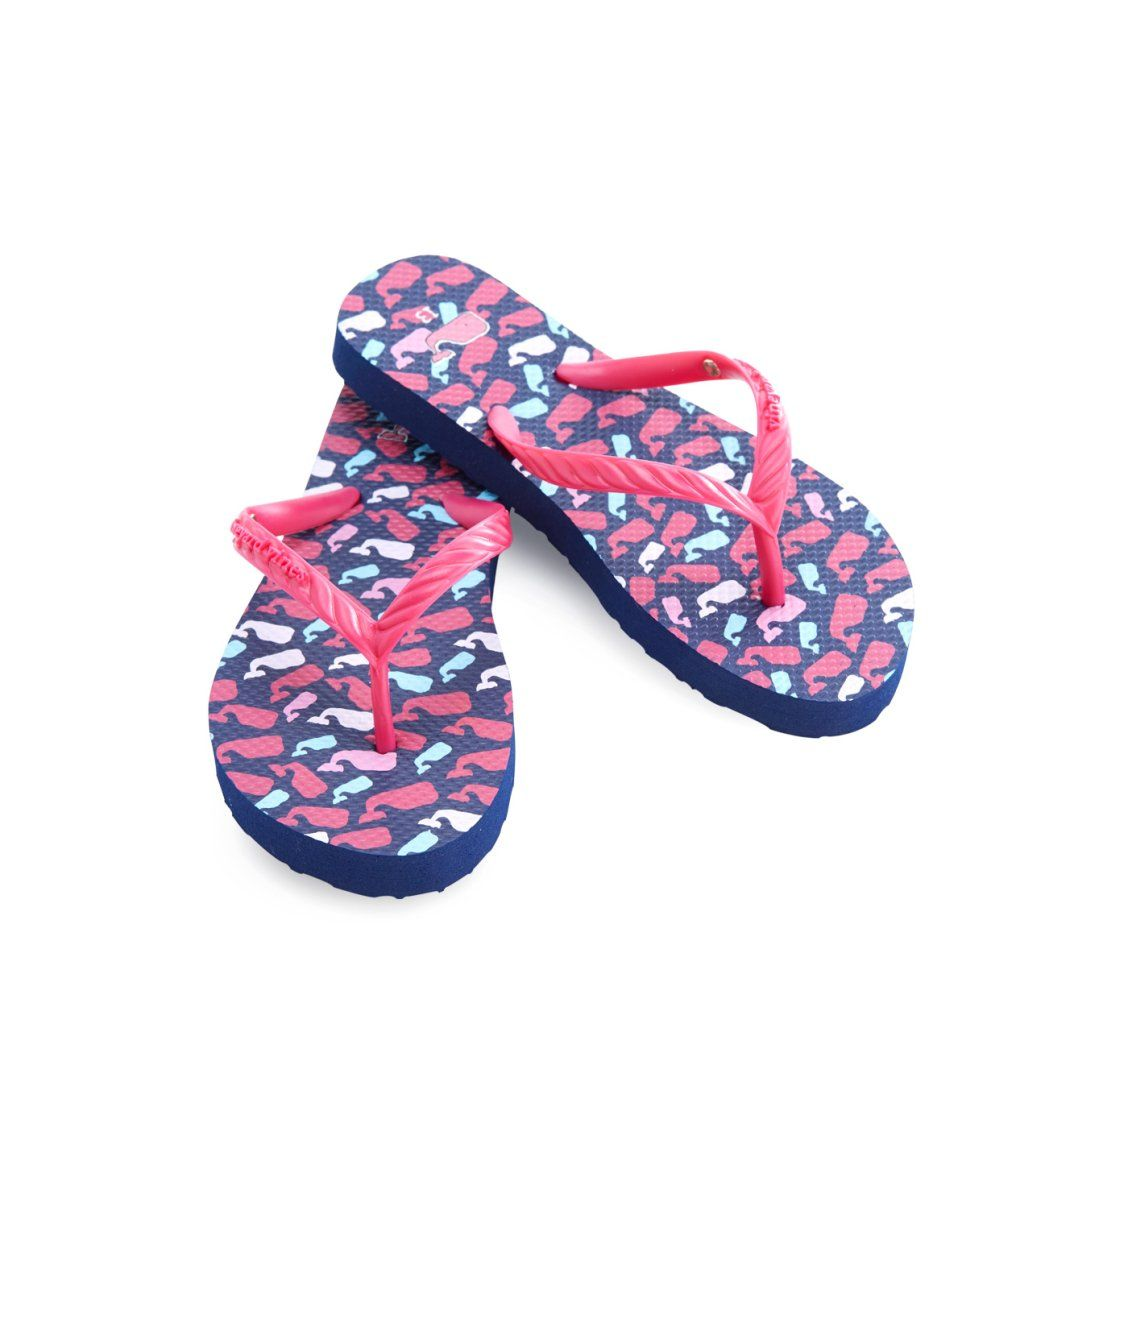 5f03c08a1 Girls Scattered Whales Print Flip Flops